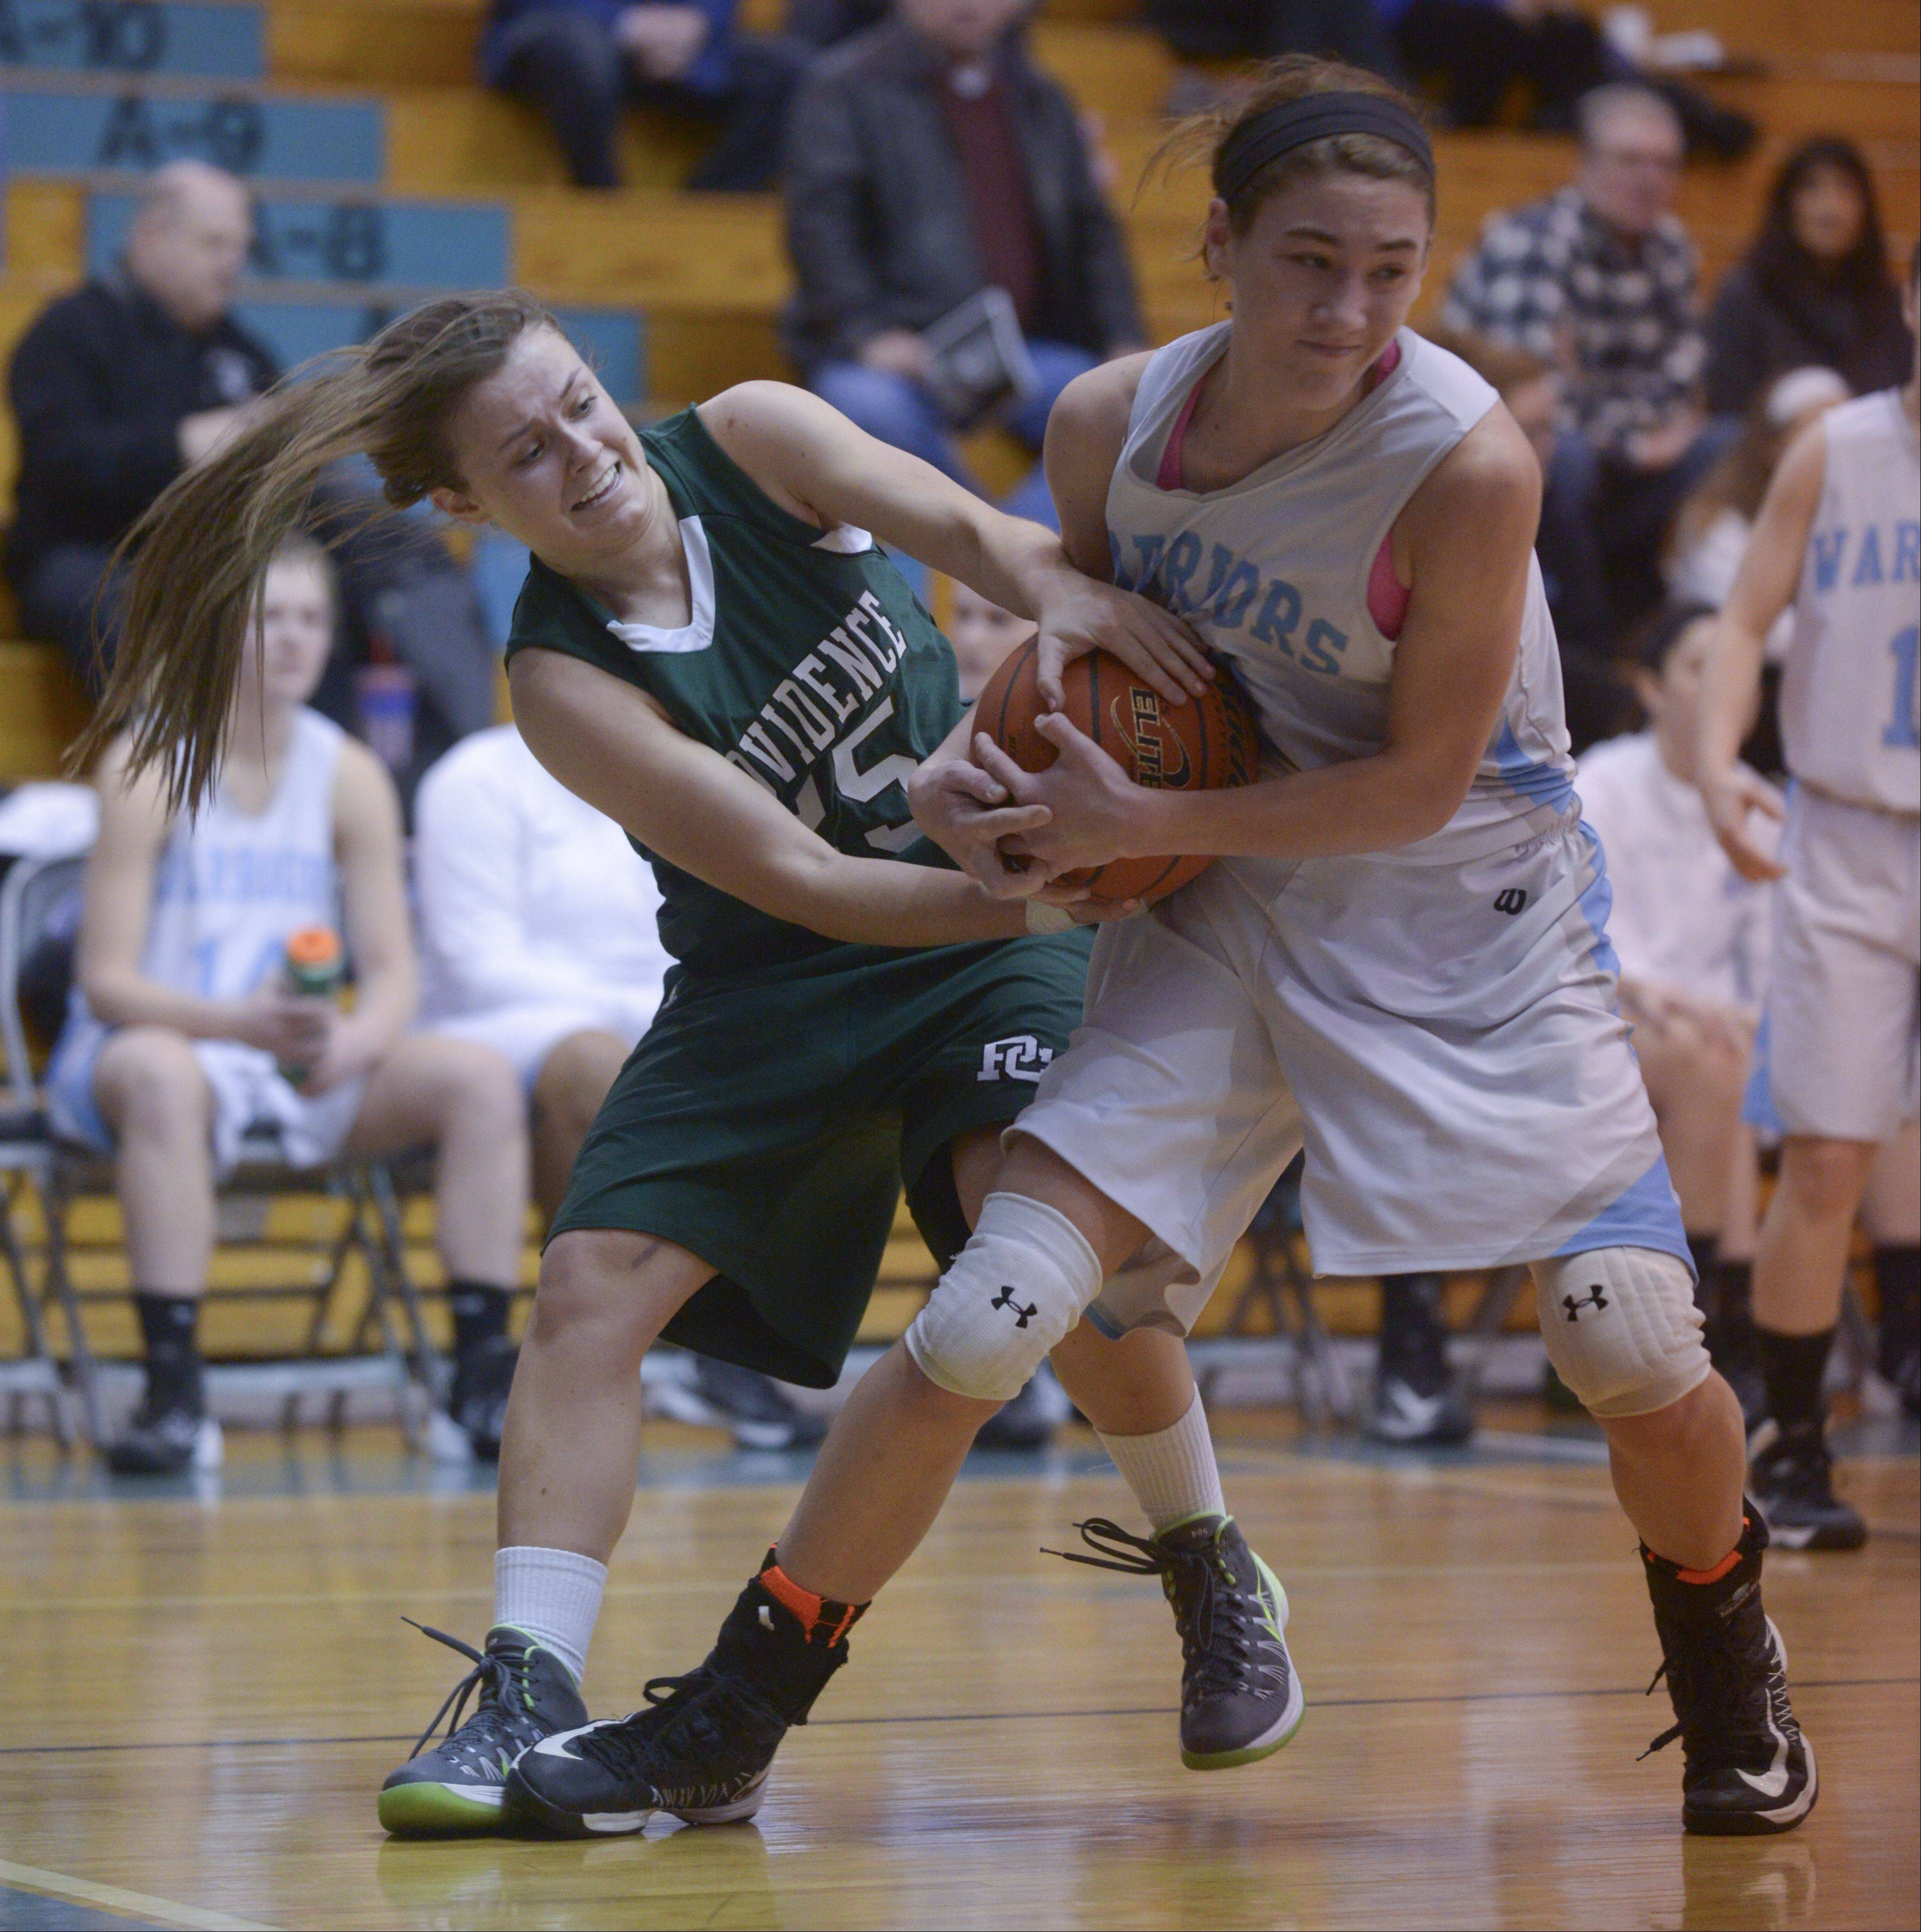 Providence's Anne Corso and Willowbrook's Molly Krawczykowski battle for control of the ball during the McDonald's girls basketball shootout at Willowbrook High School.